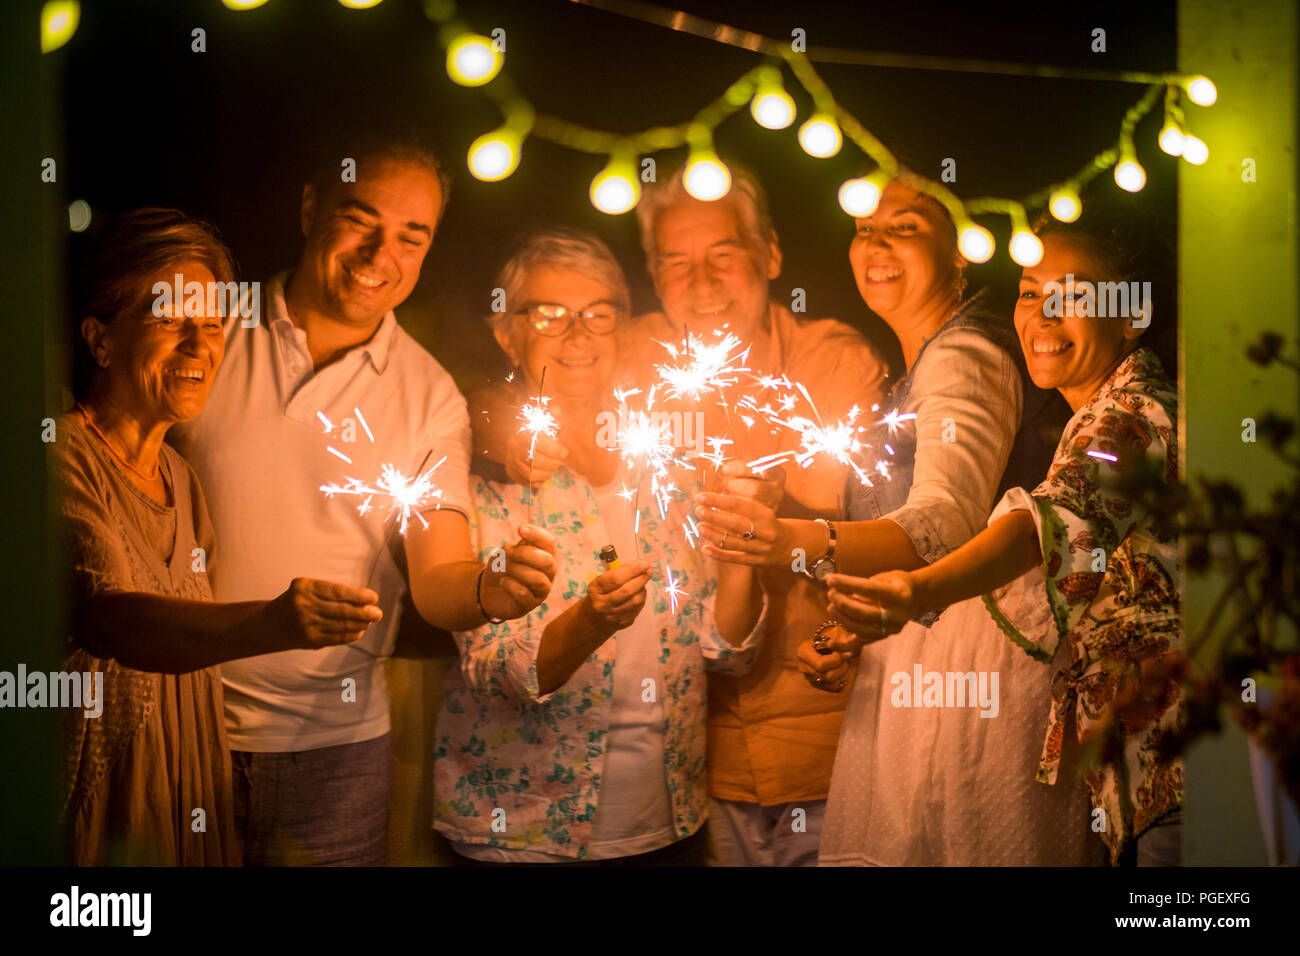 group of people celebrate an event like new years eve or birthday all together with sparkles light by night in the dark. smiles and having fun in frie - Stock Image